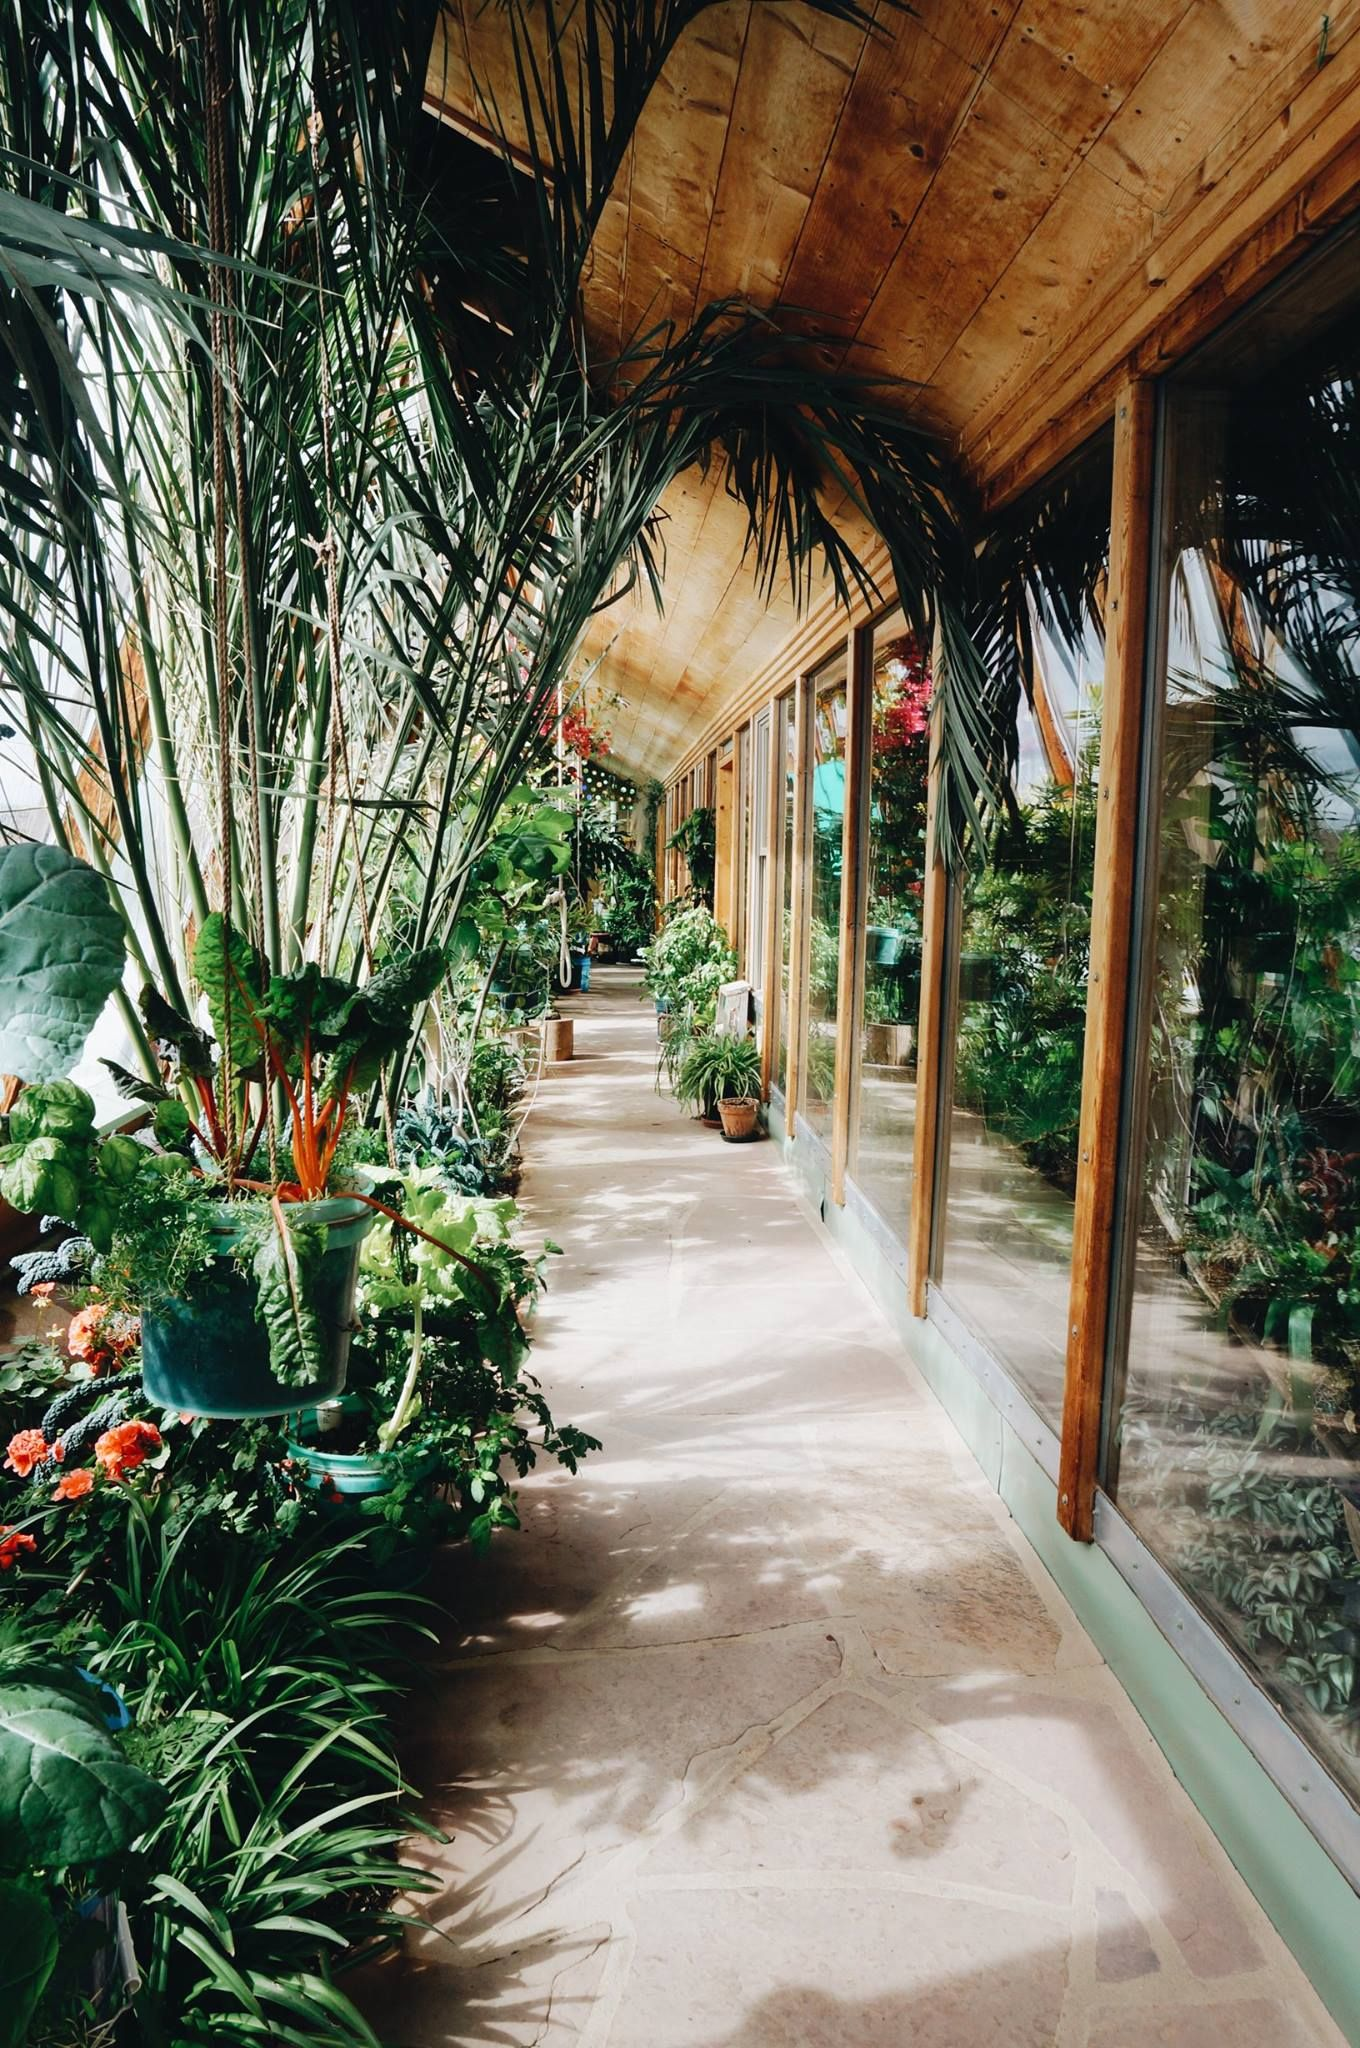 Taos Earthship Community - New Mexico | Greenhouses in ...